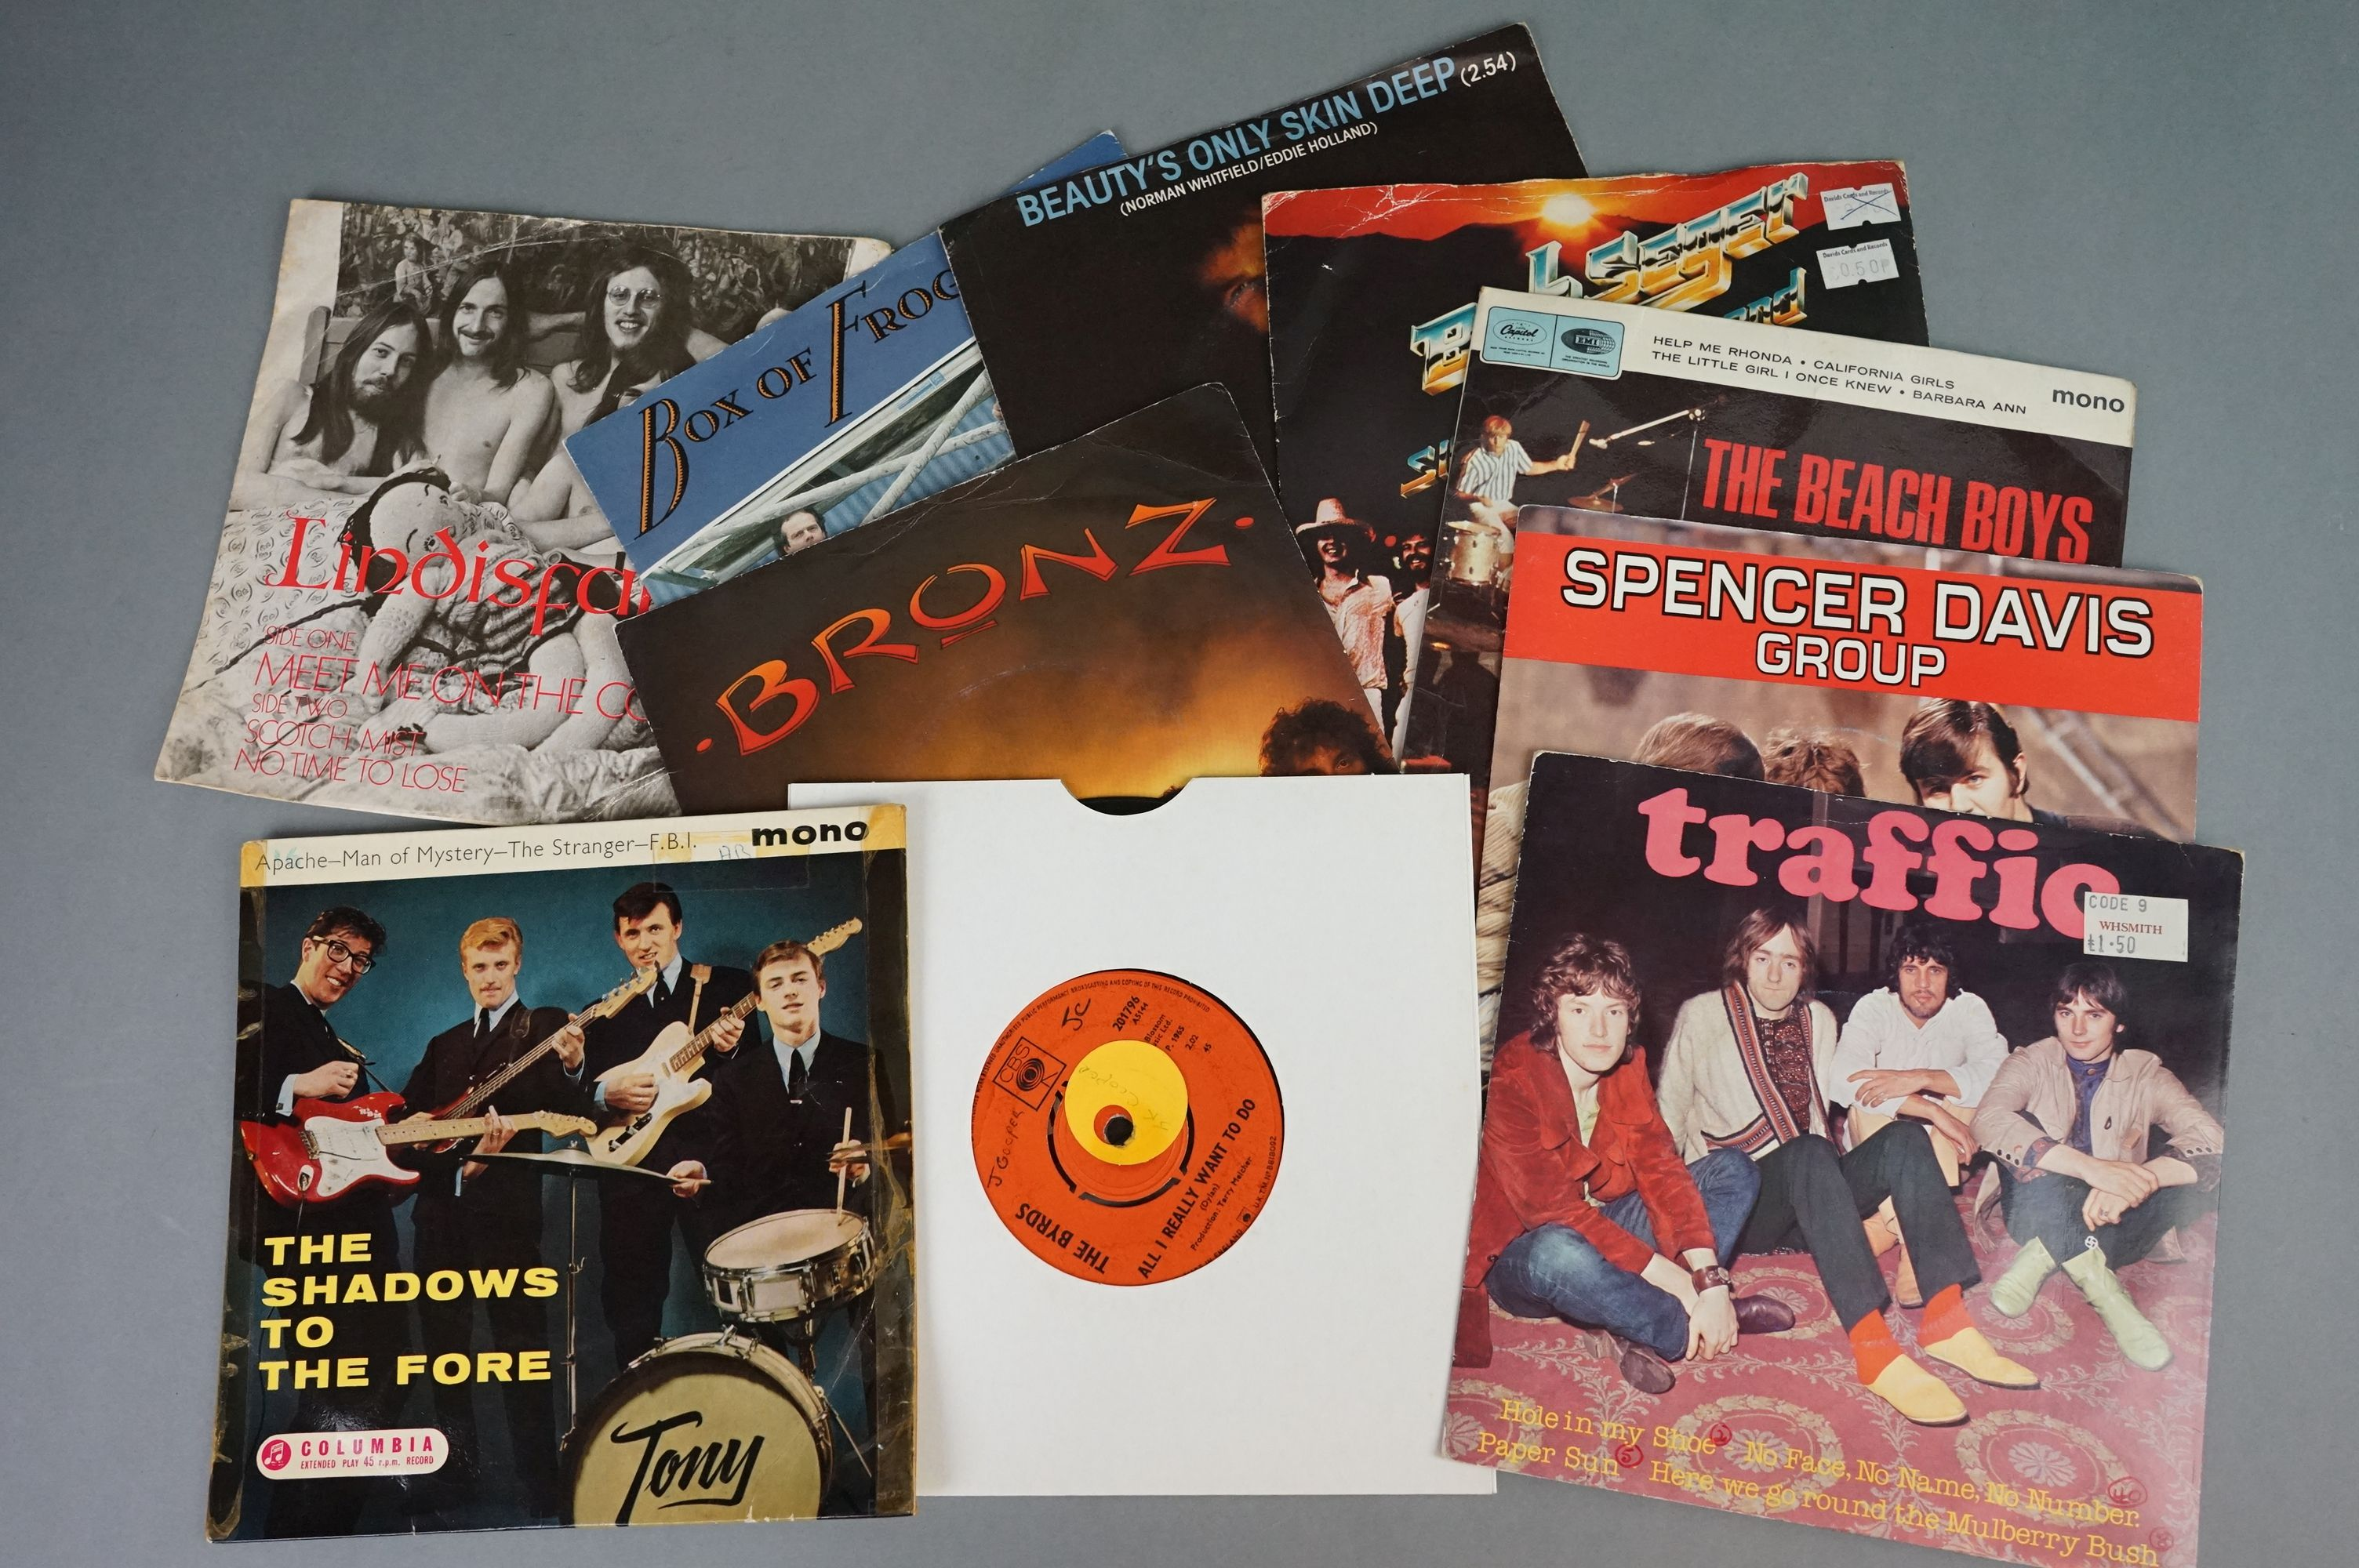 """Vinyl - 100+ 7"""" singles/EPs, mostly 1960s/1970s rock & pop, to include Rolling Stones, Beatles, Who, - Image 2 of 4"""